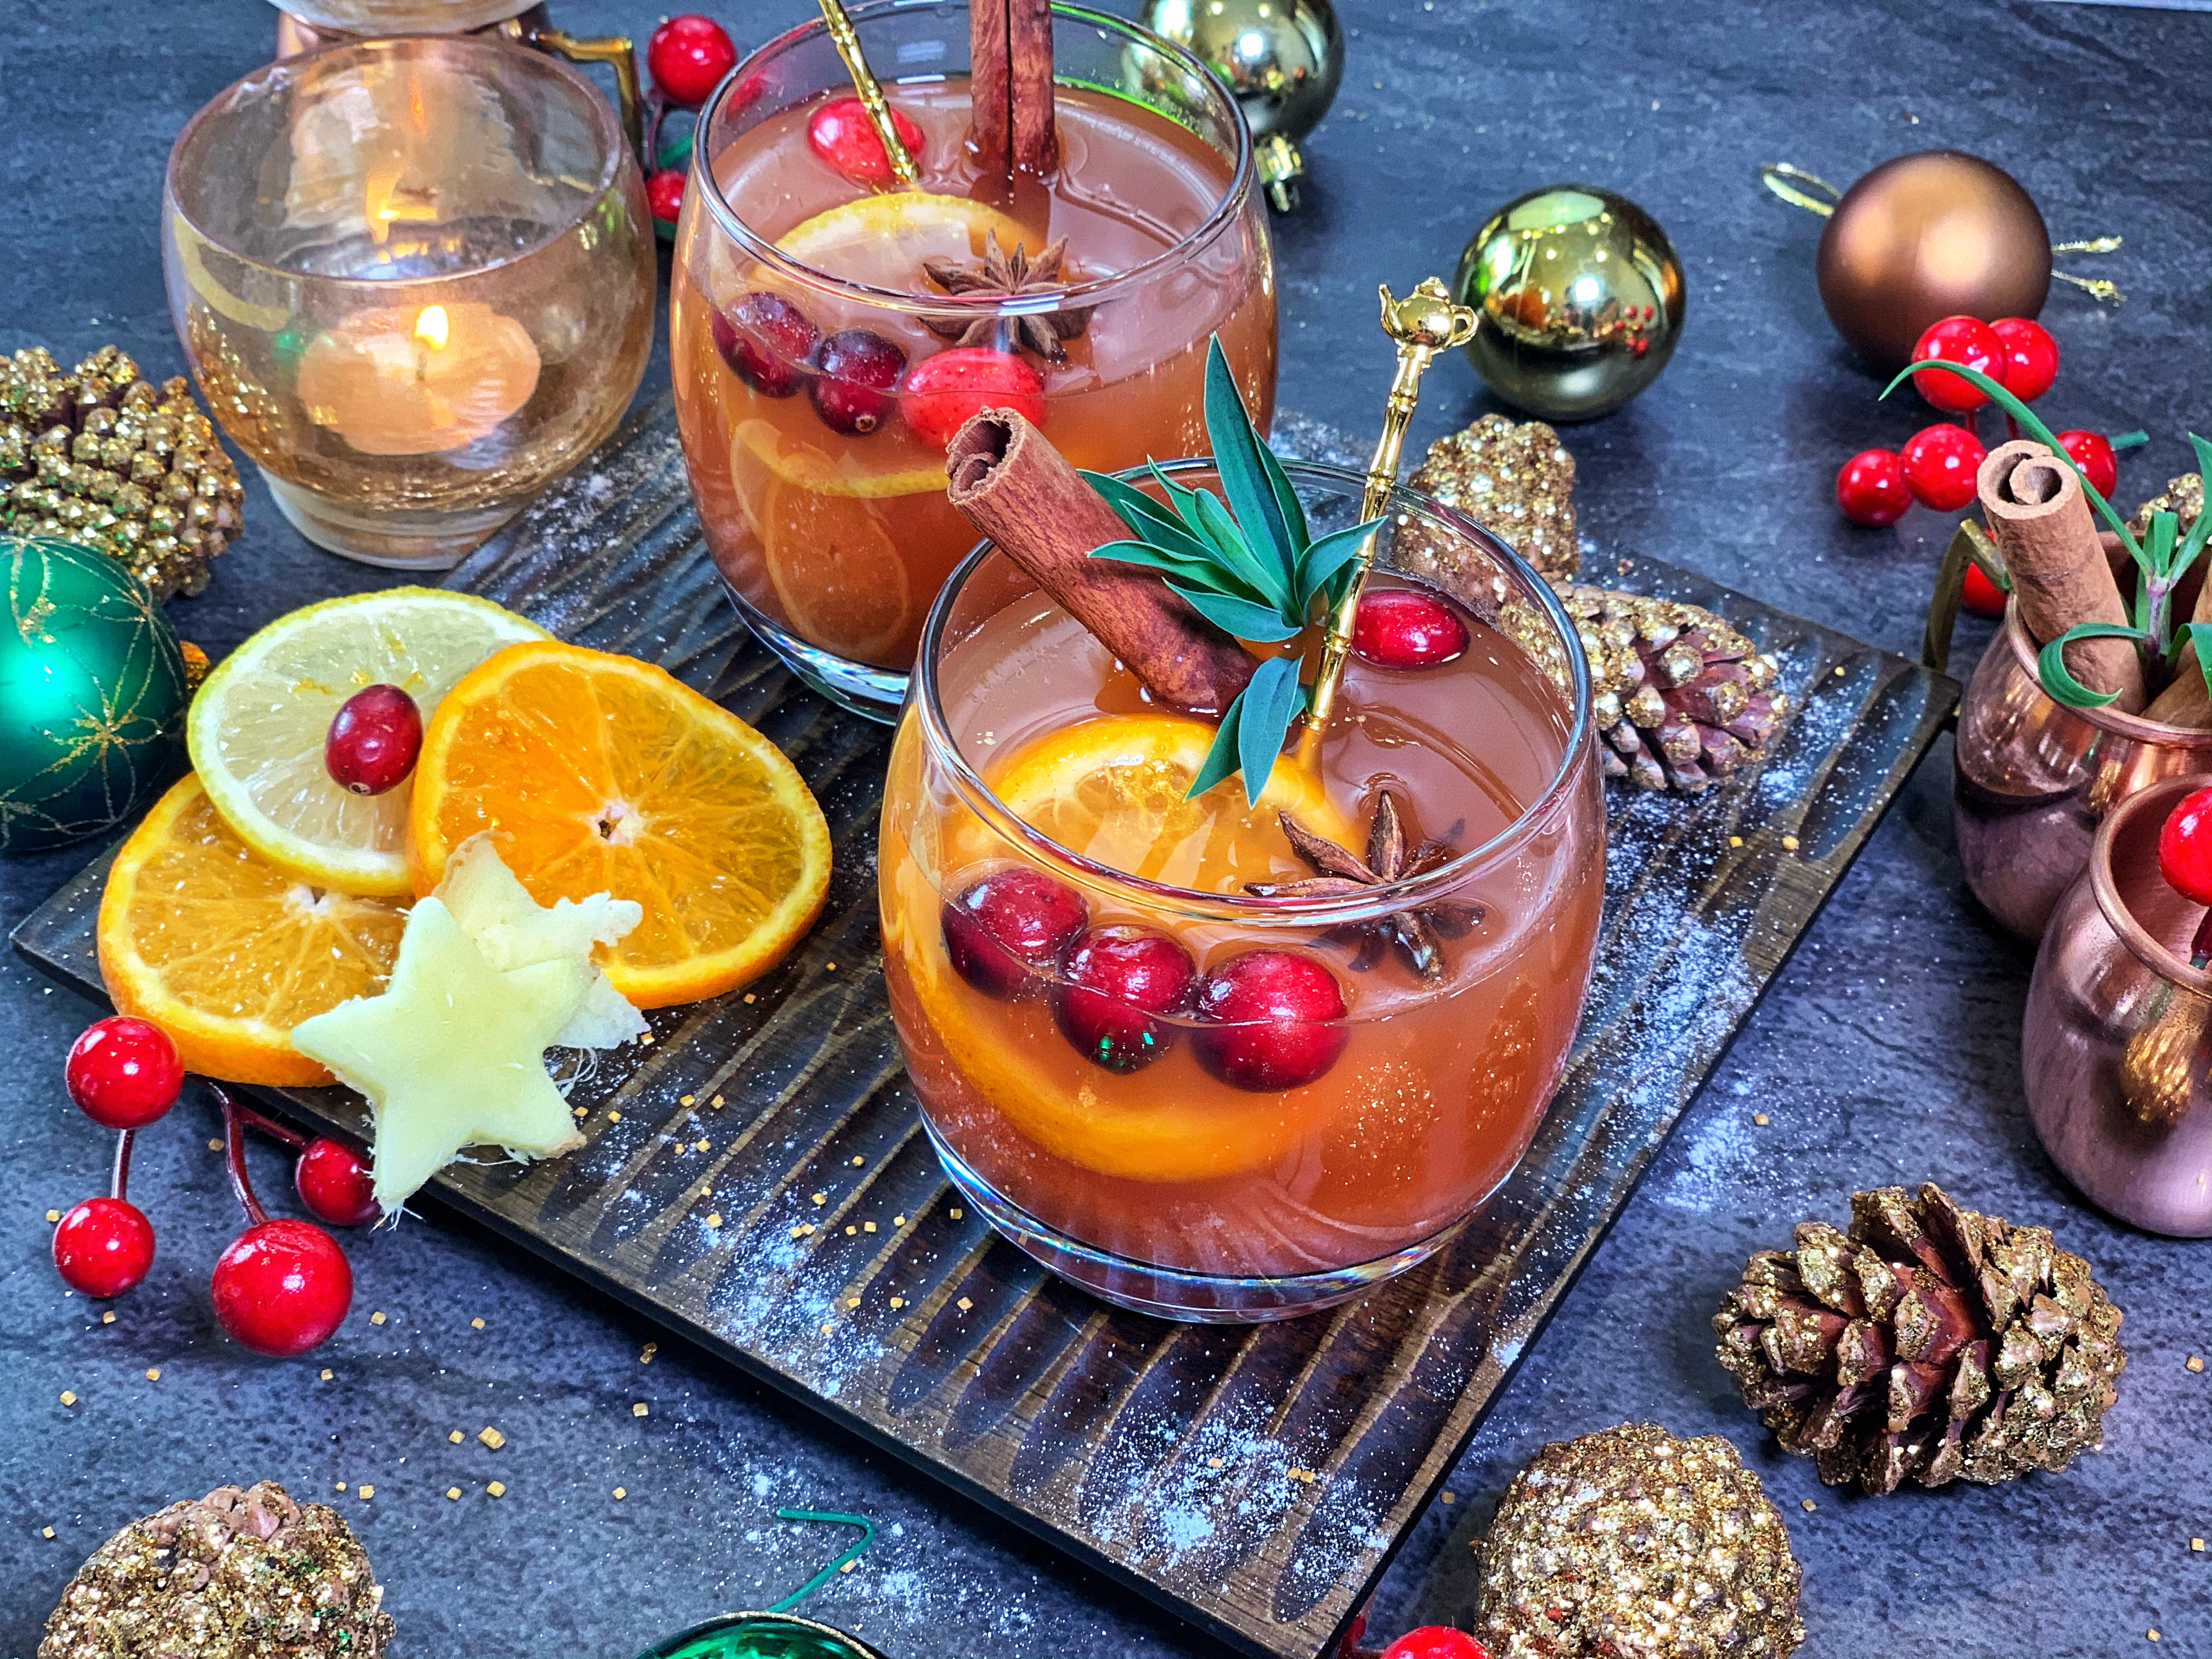 Warm Sugar Free Apple Cider - spiced with star anise, cloves and cinnamon, and brought to life with bursts of citrus, the flavors and natural sweetness from dates of this cider are unparalleled. It's the perfect drink to add a festive touch to a holiday party or daily routine.